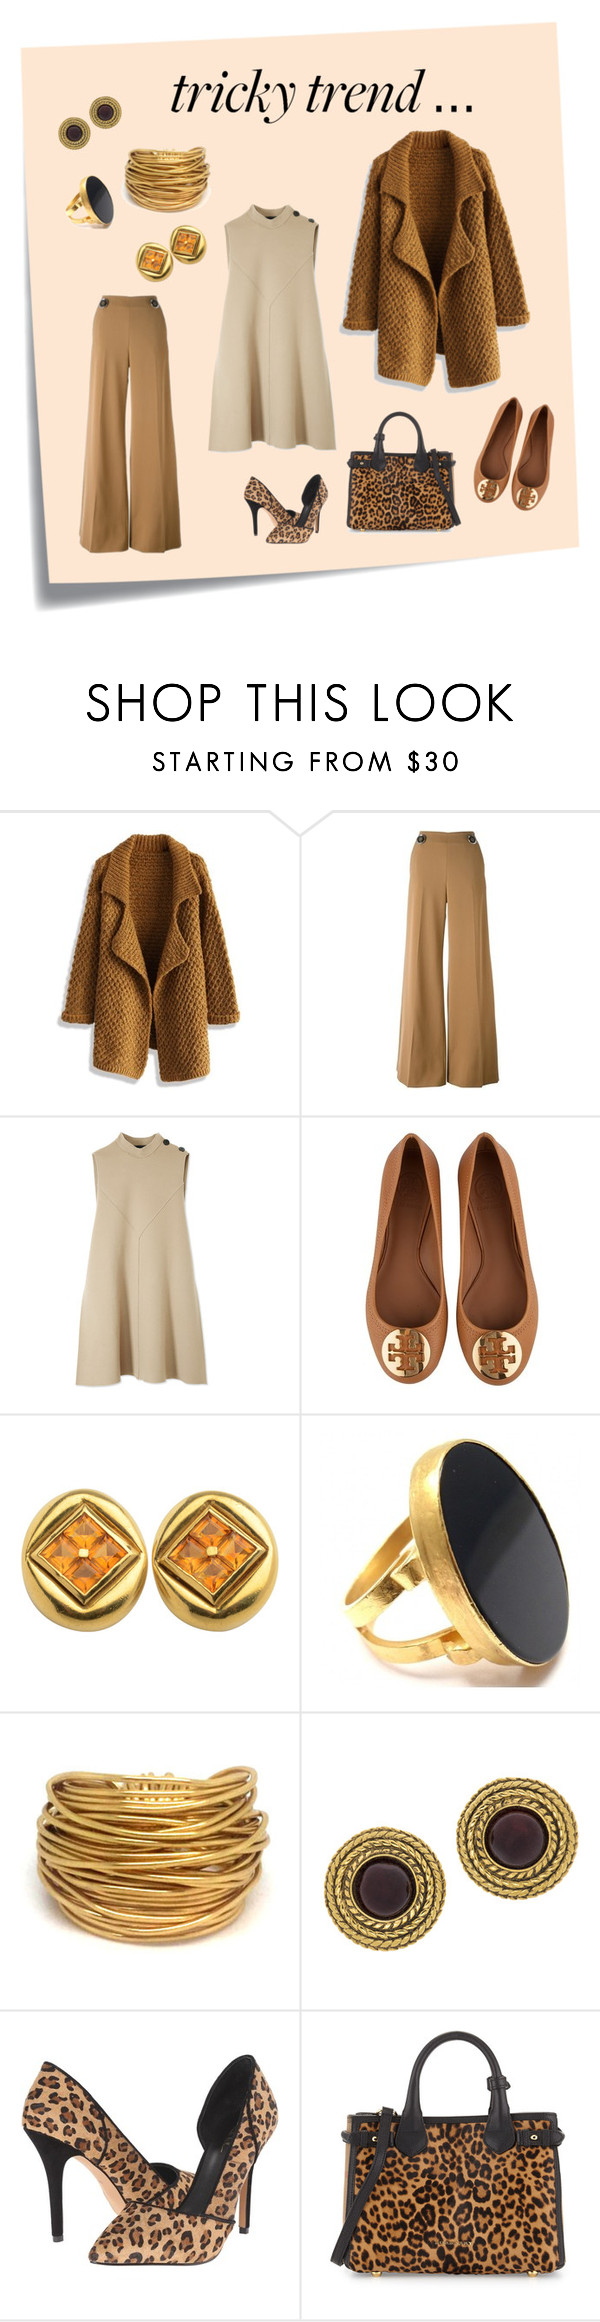 """""""DRESS AND PANTS"""" by mountainalive on Polyvore featuring Post-It, Chicwish, STELLA McCARTNEY, Derek Lam, Tory Burch, Yossi Harari, Black & Sigi, Chanel, Artelier by Nicole Miller and Burberry"""